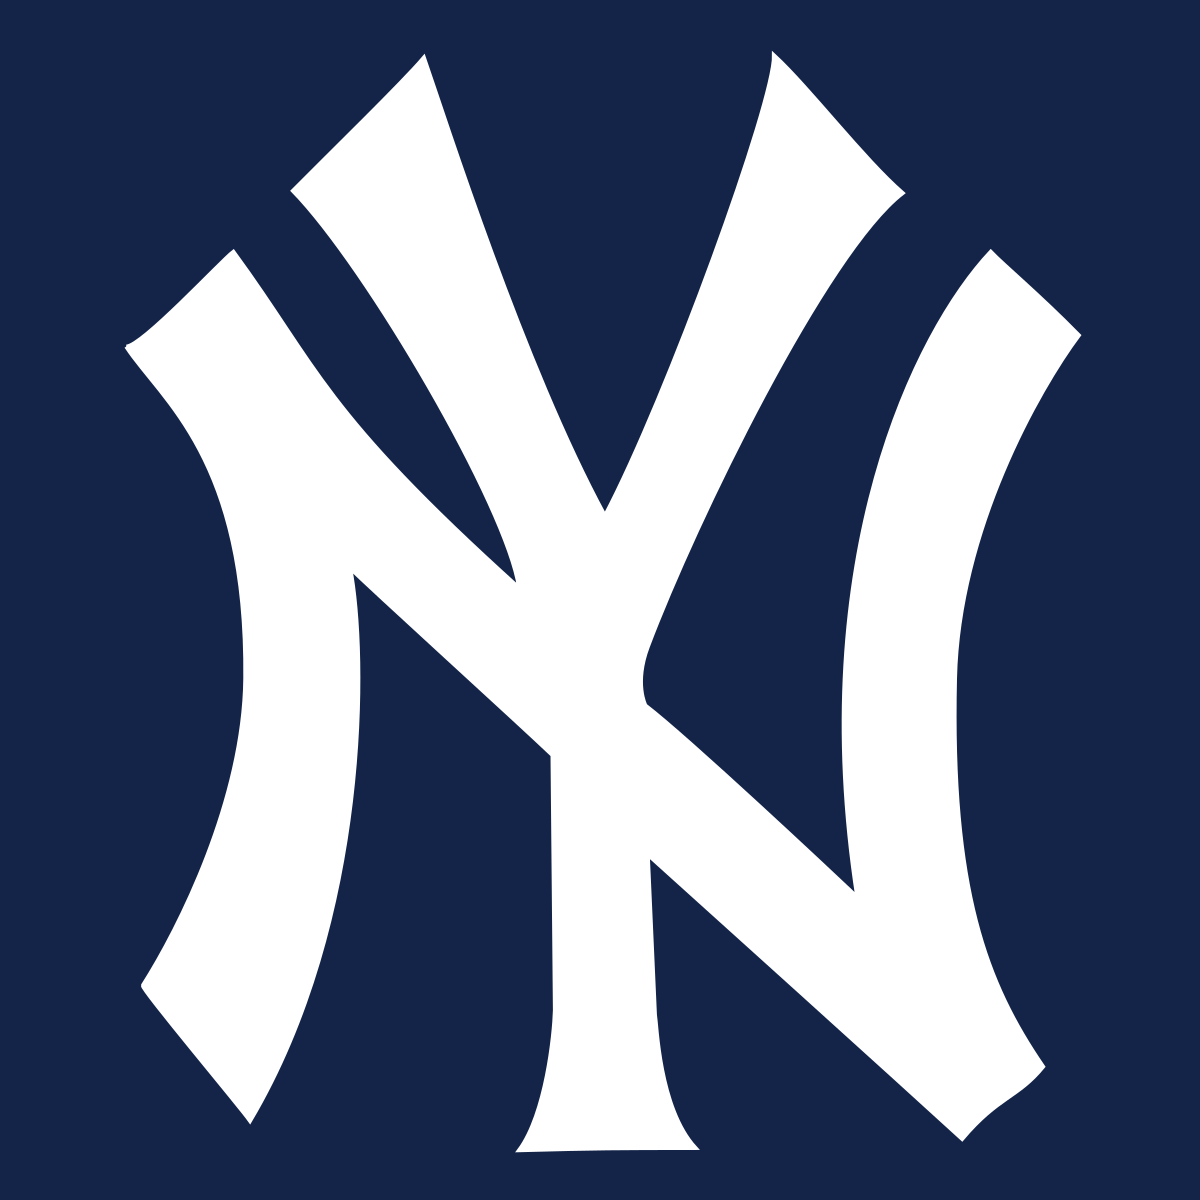 nyy.png